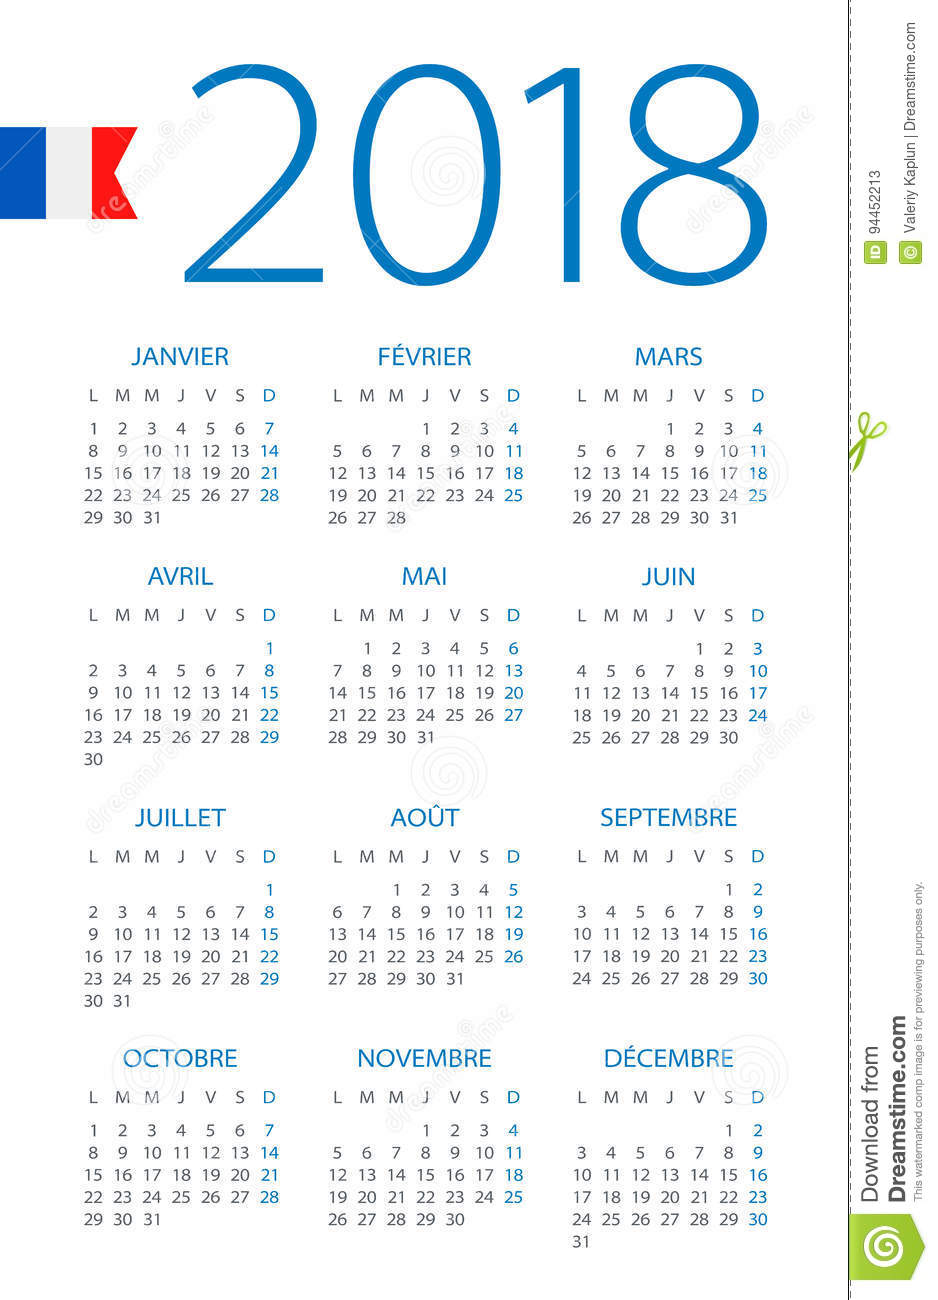 calendar 2018 french version